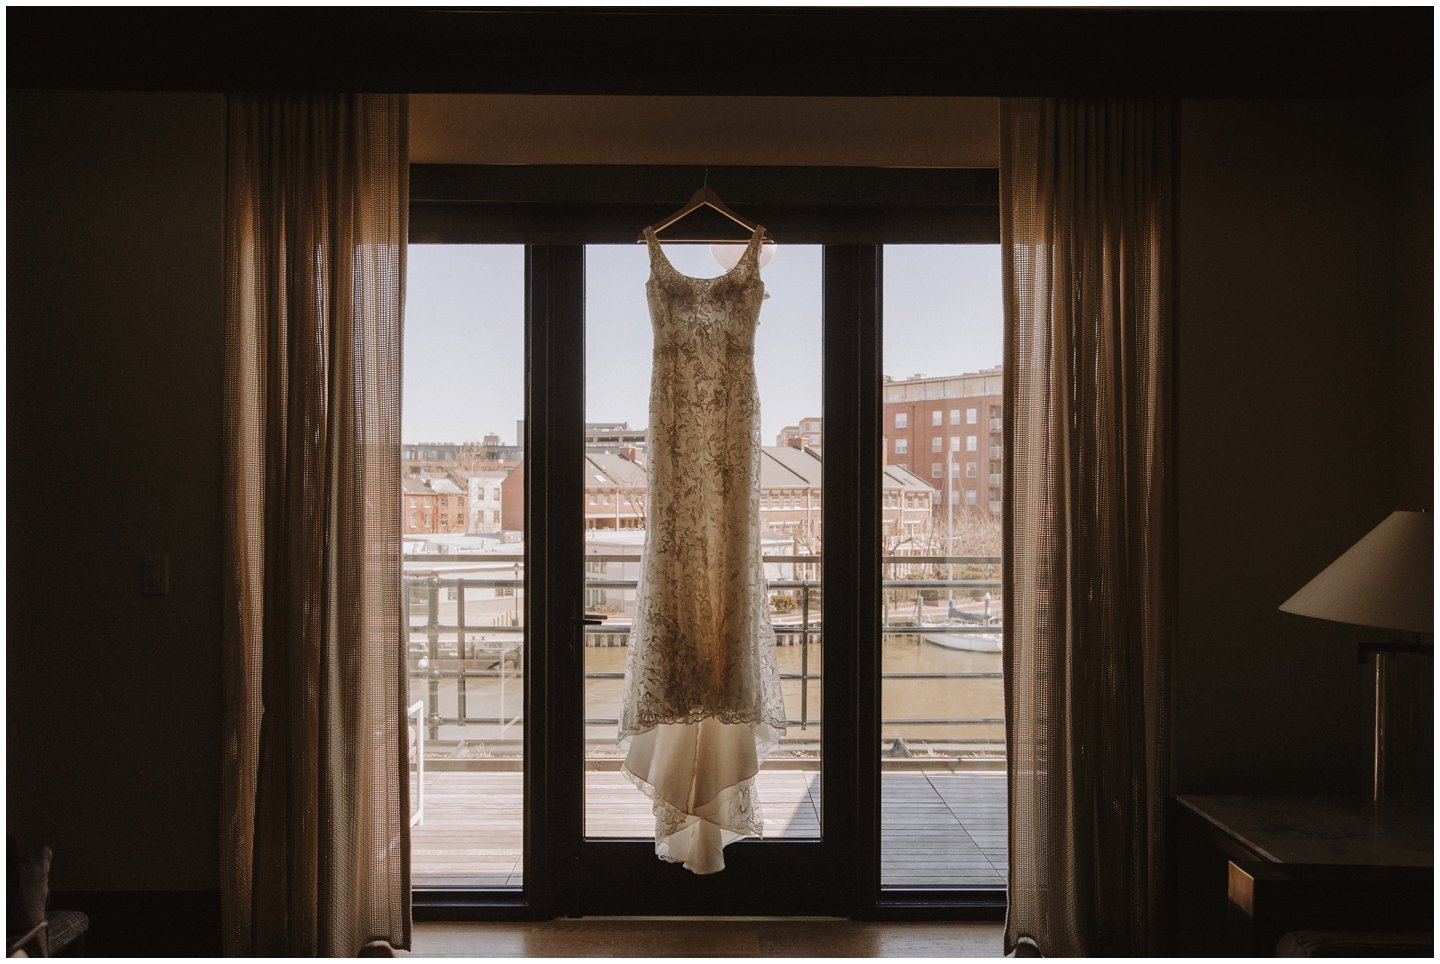 Modern wedding dress hanging in a window